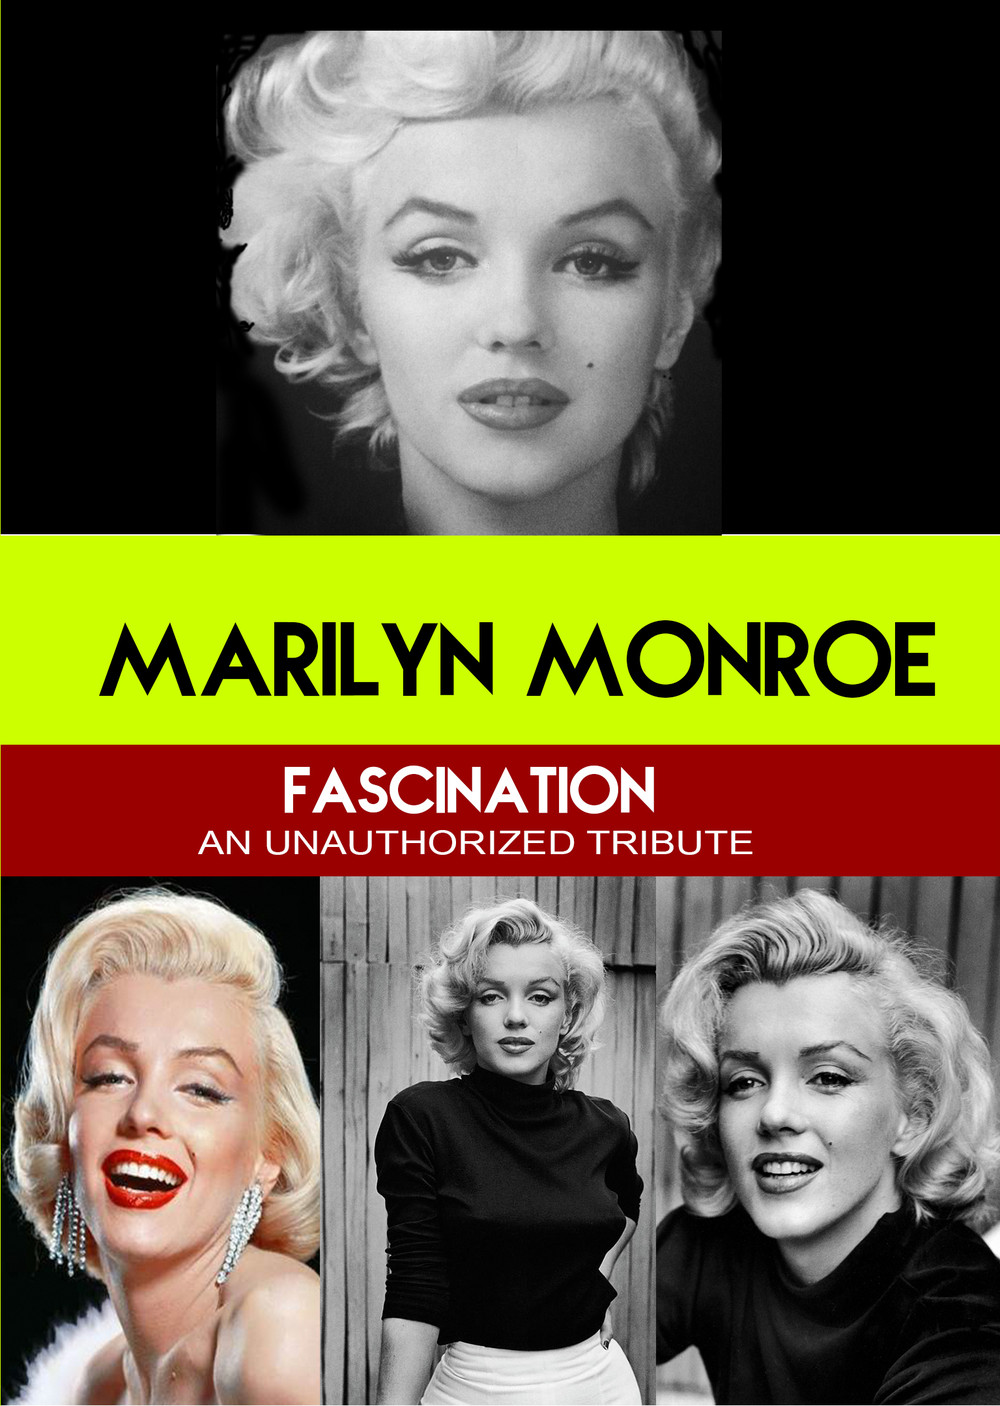 L7802 - Marilyn Monroe - Fascination An Unauthorized Tribute